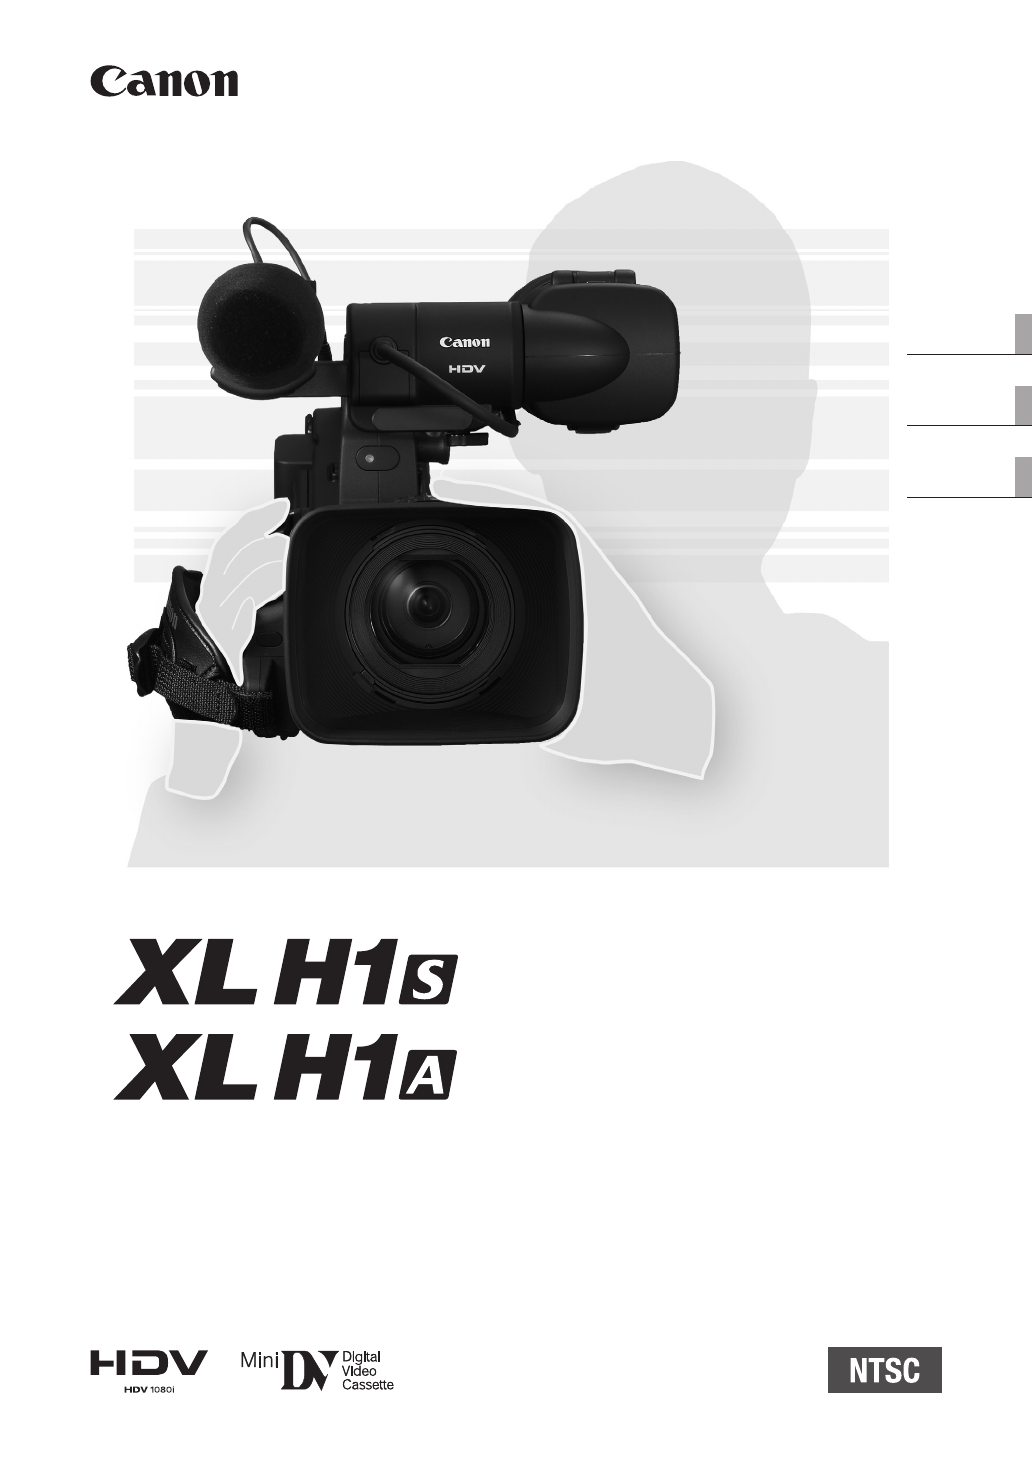 cannon camcorder xl h1 a user guide manualsonline com rh camera manualsonline com Canon 7D Manual Canon Camera User Manual